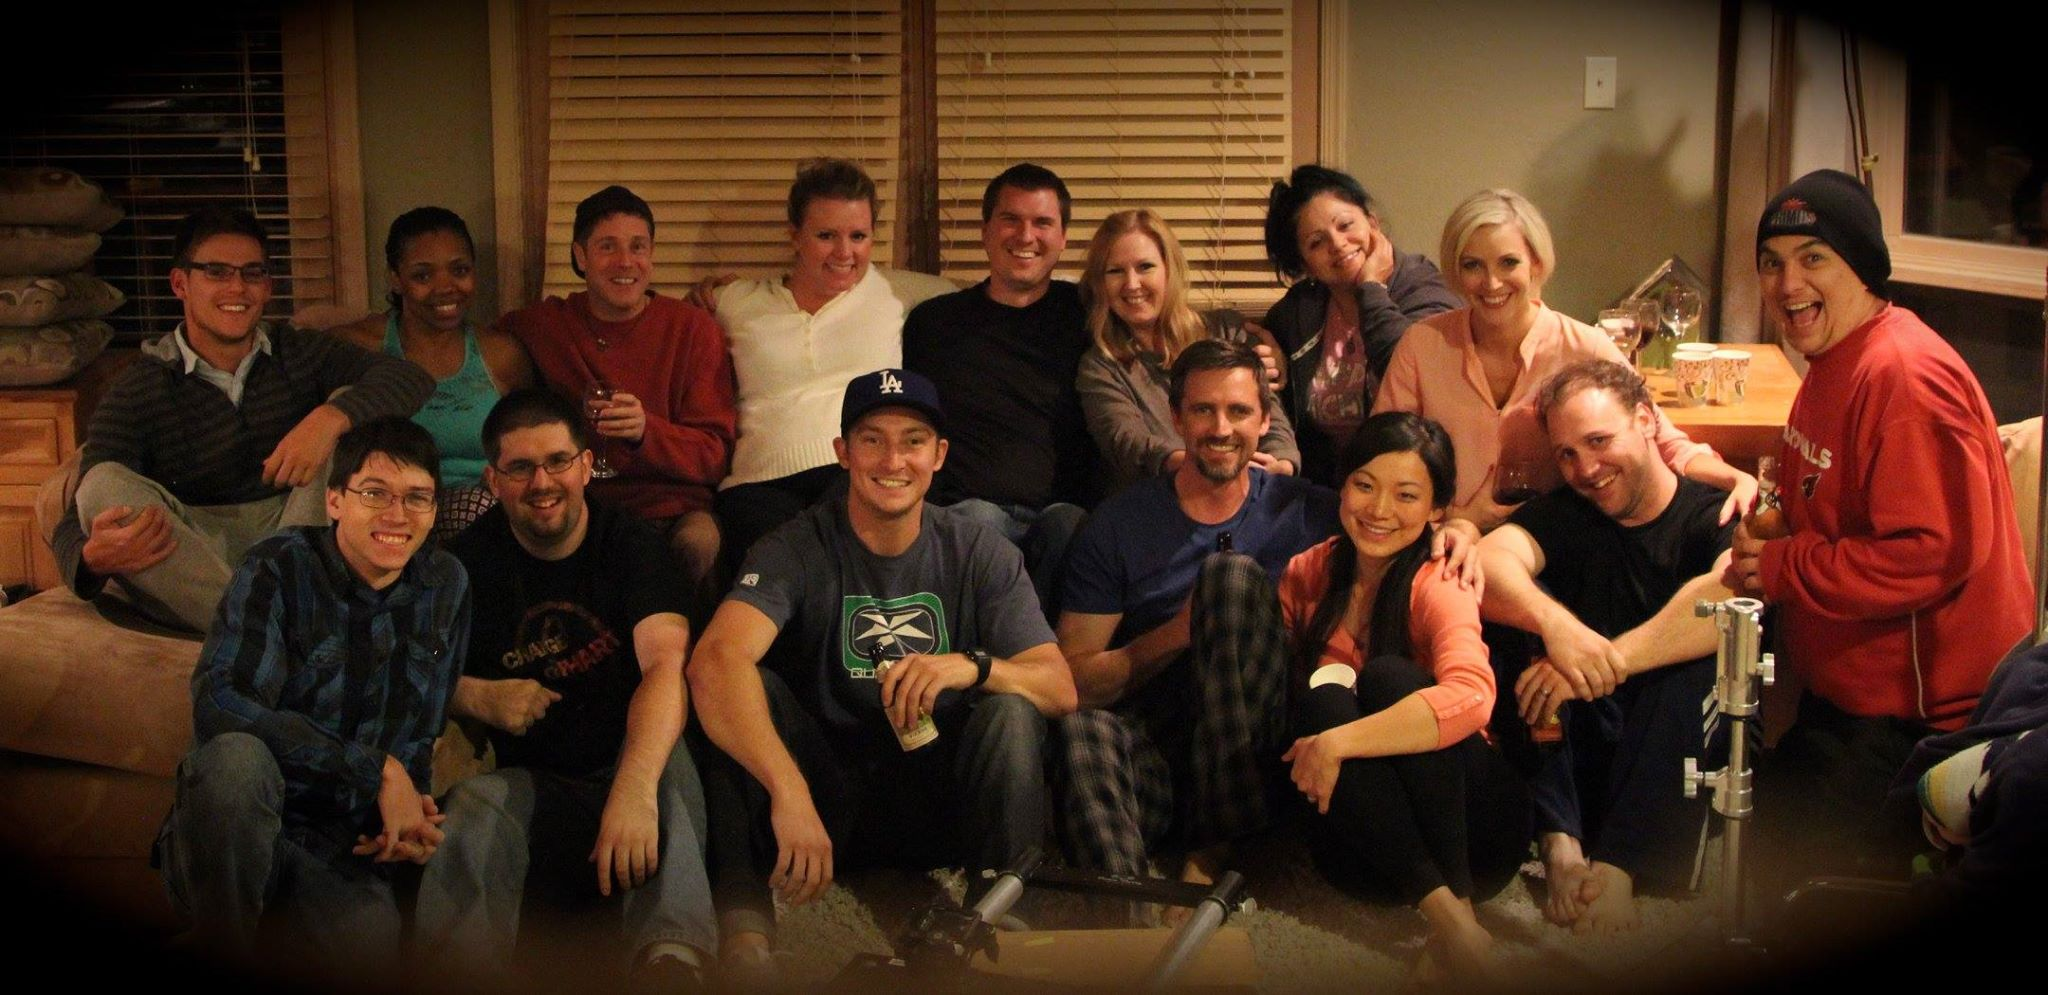 The entire production cast and crew after the final day of filming. Exhausted, but fulfilled.